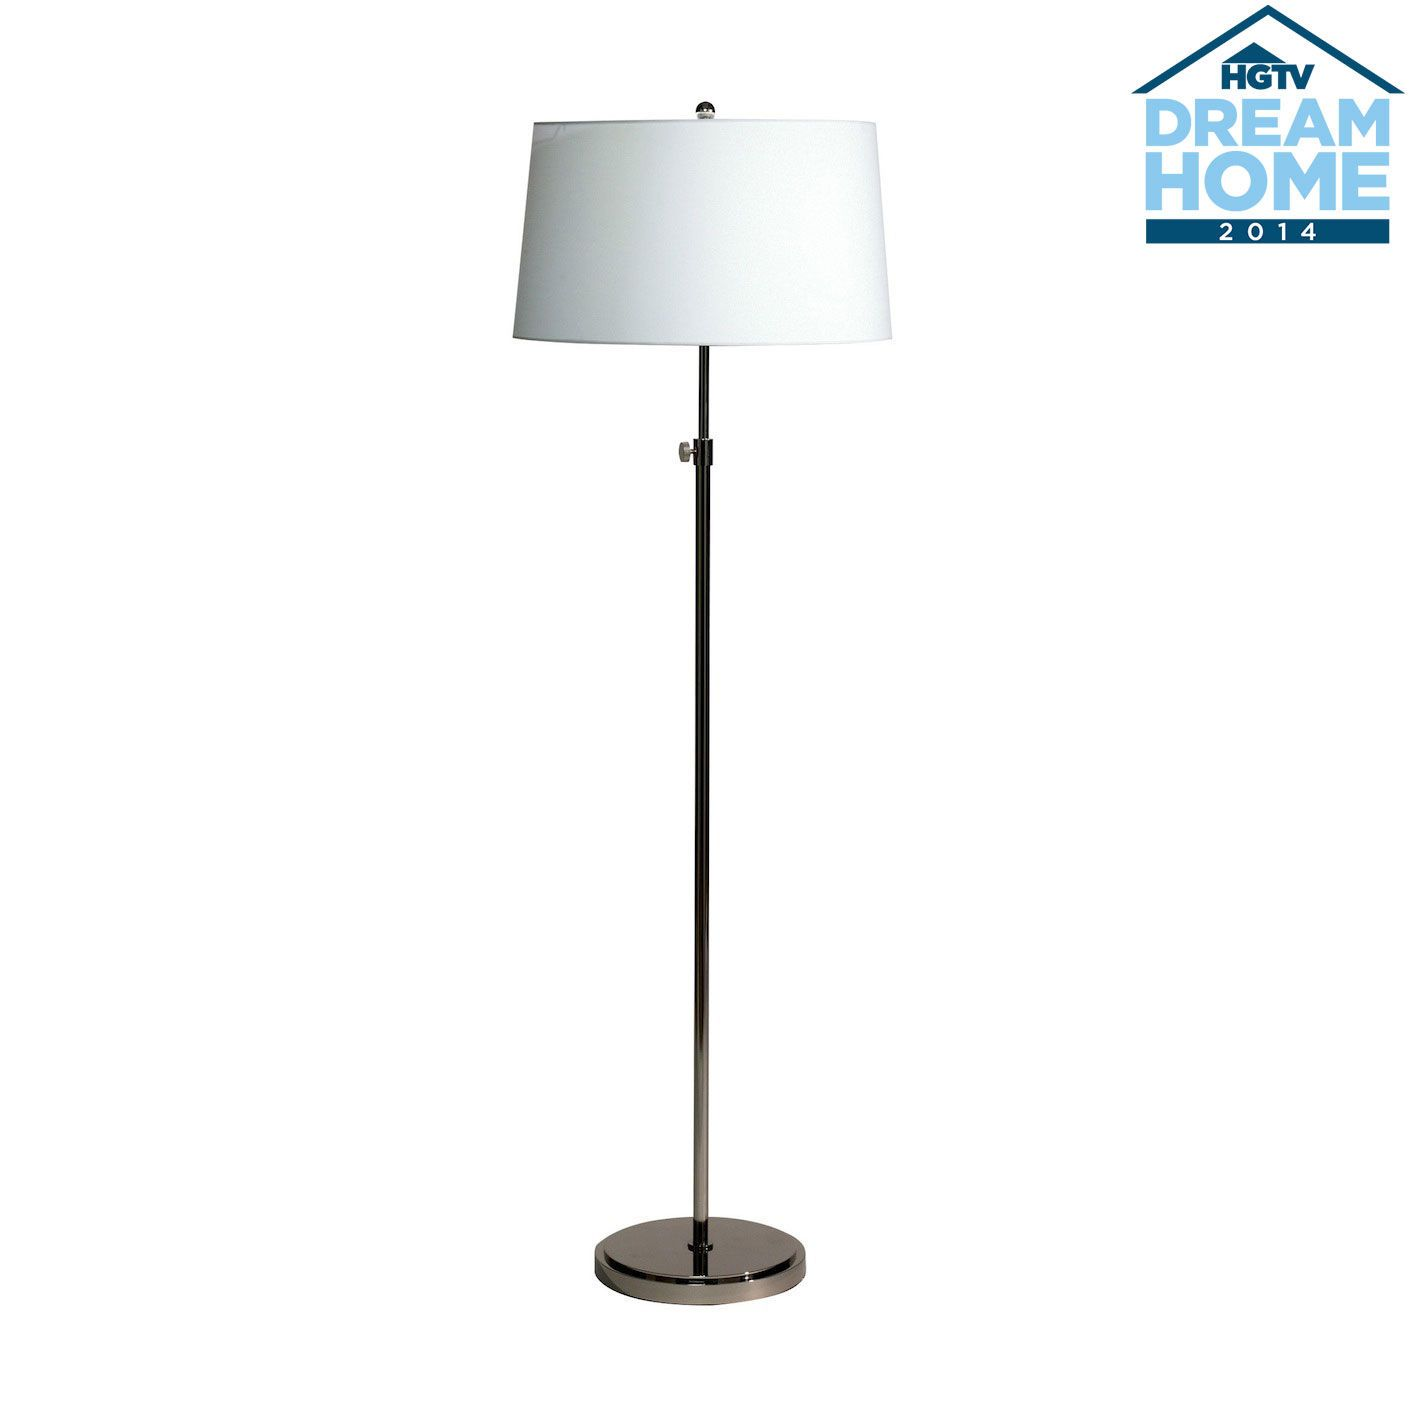 Astrid adjustable floor lamp ethan allen us living room astrid adjustable floor lamp ethan allen us mozeypictures Choice Image